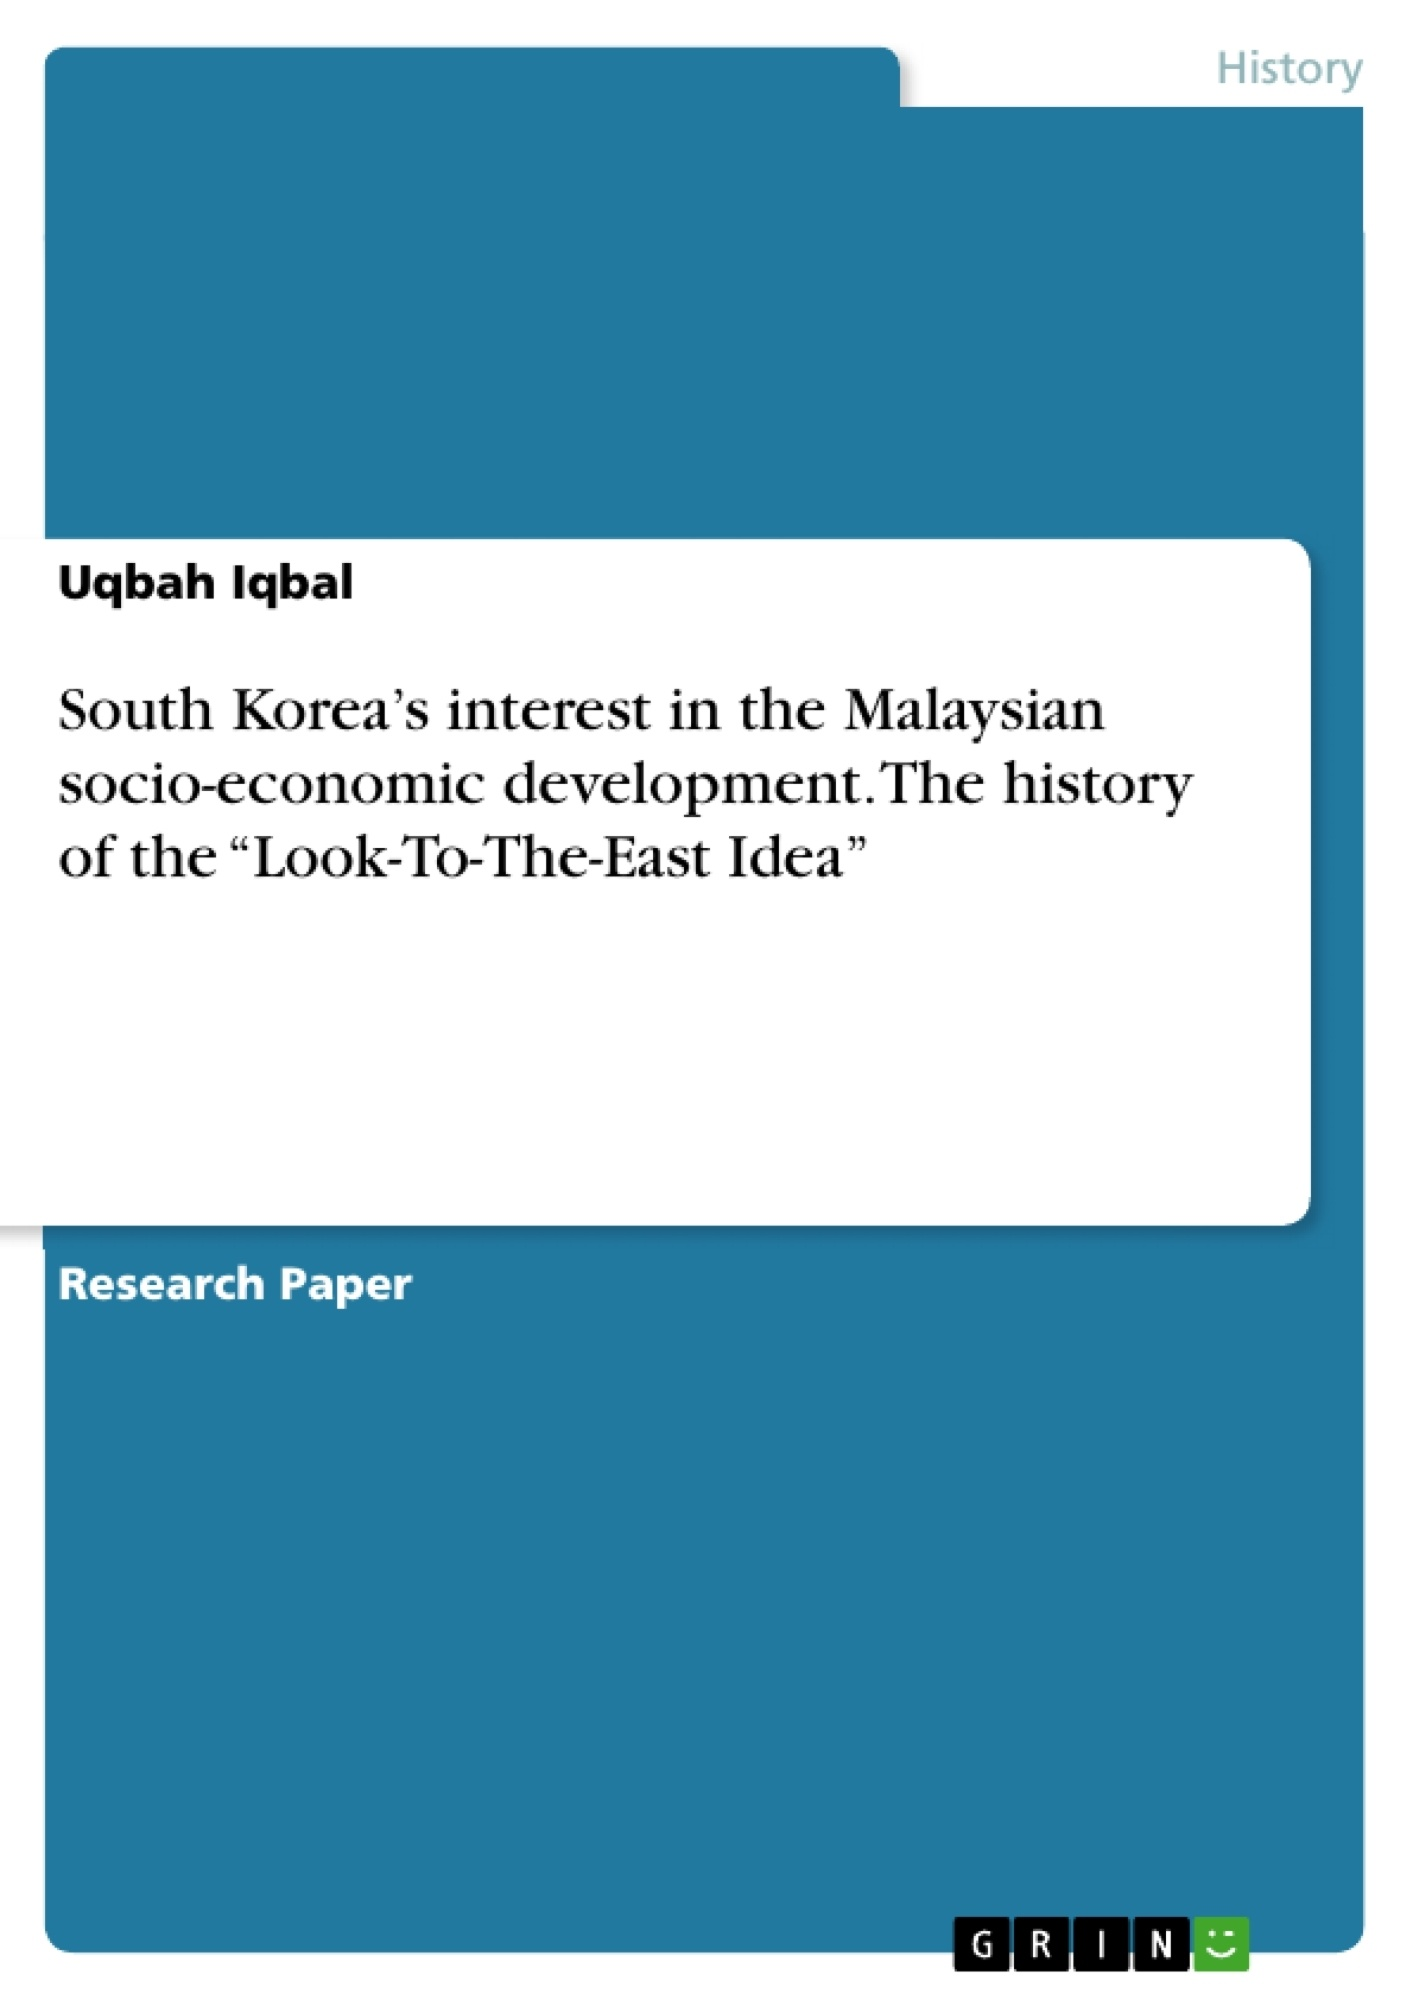 """Title: South Korea's interest in the Malaysian socio-economic development. The history of the """"Look-To-The-East Idea"""""""